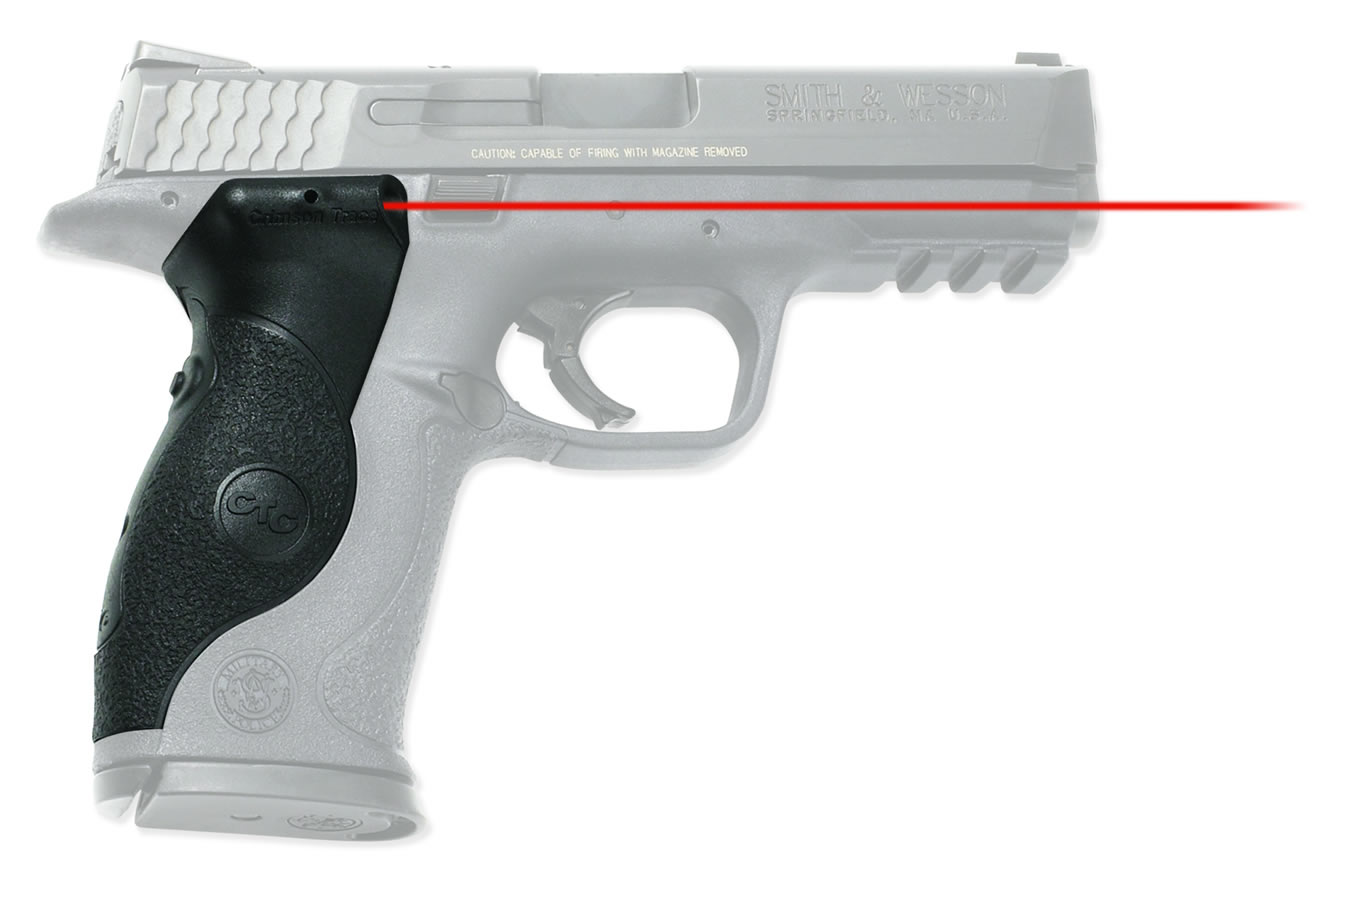 CRIMSON TRACE SW MP FULL-SIZE PISTOL LASERGRIP